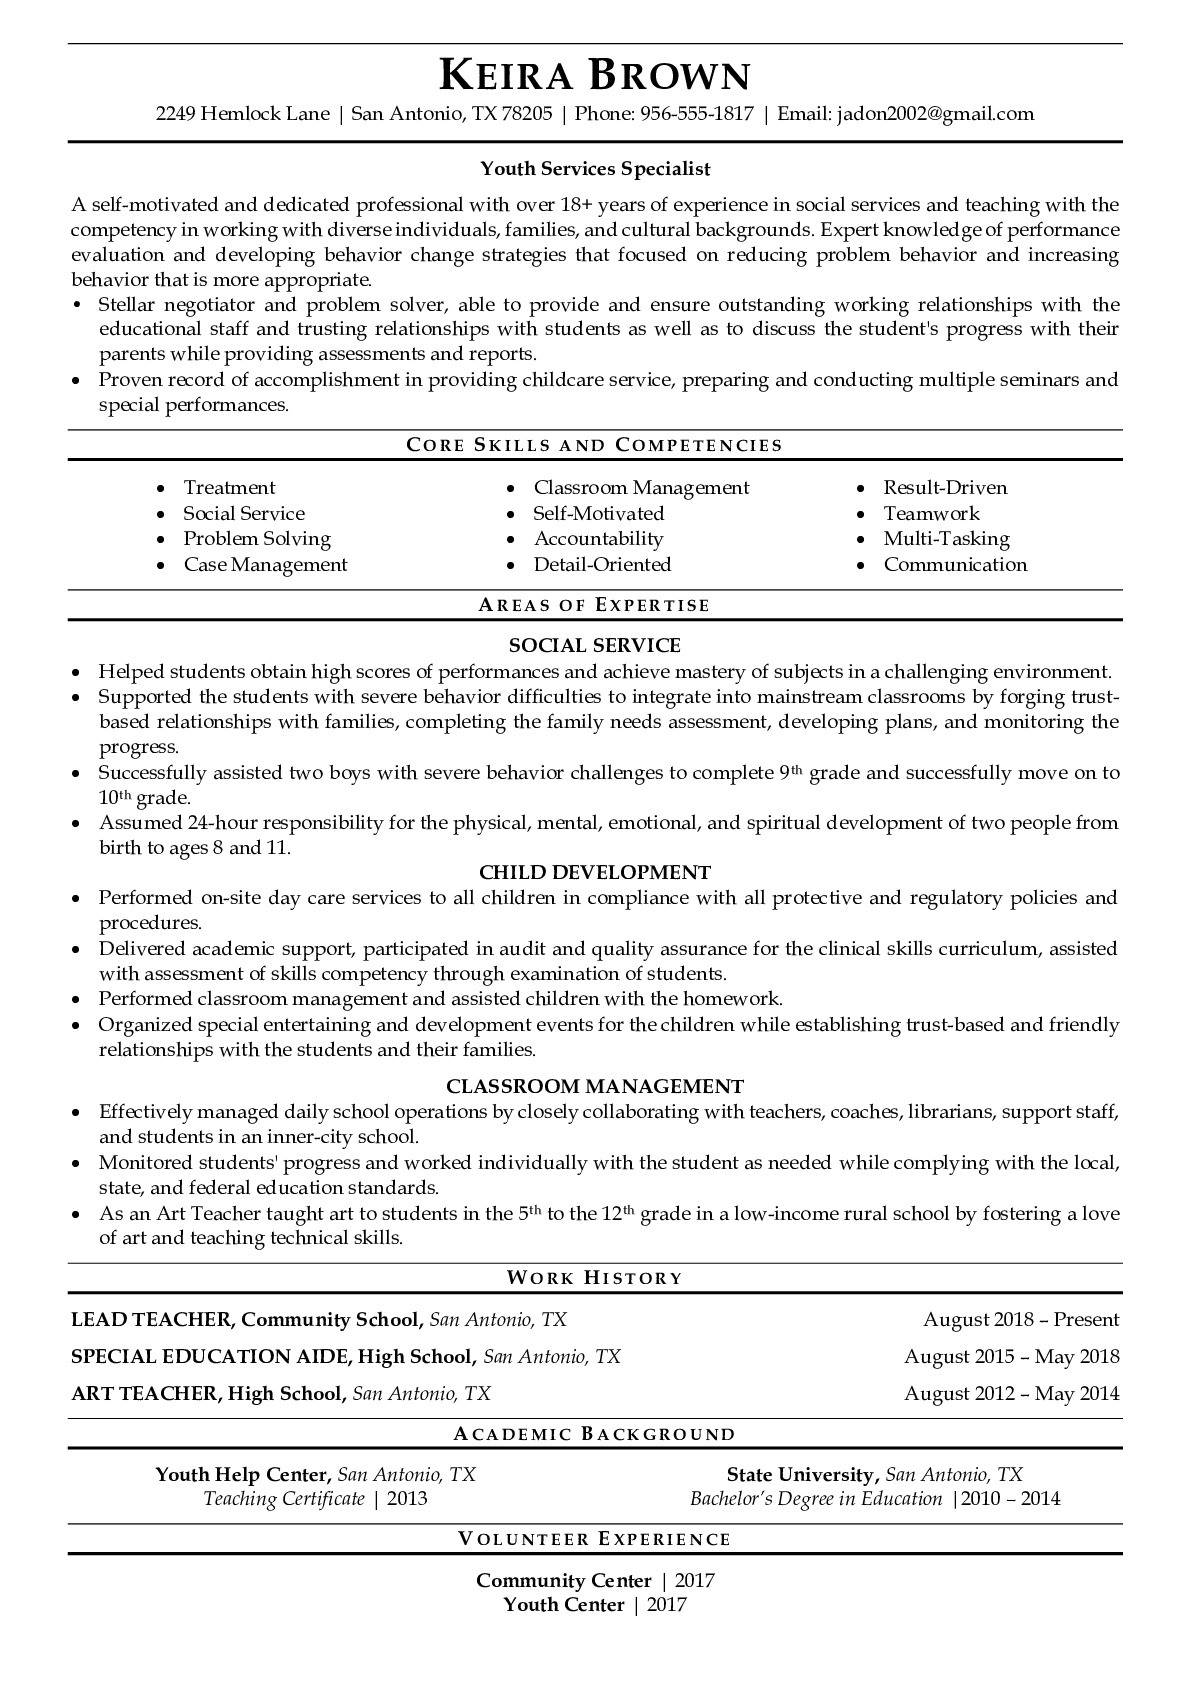 Youth Services Specialist Resume Examples